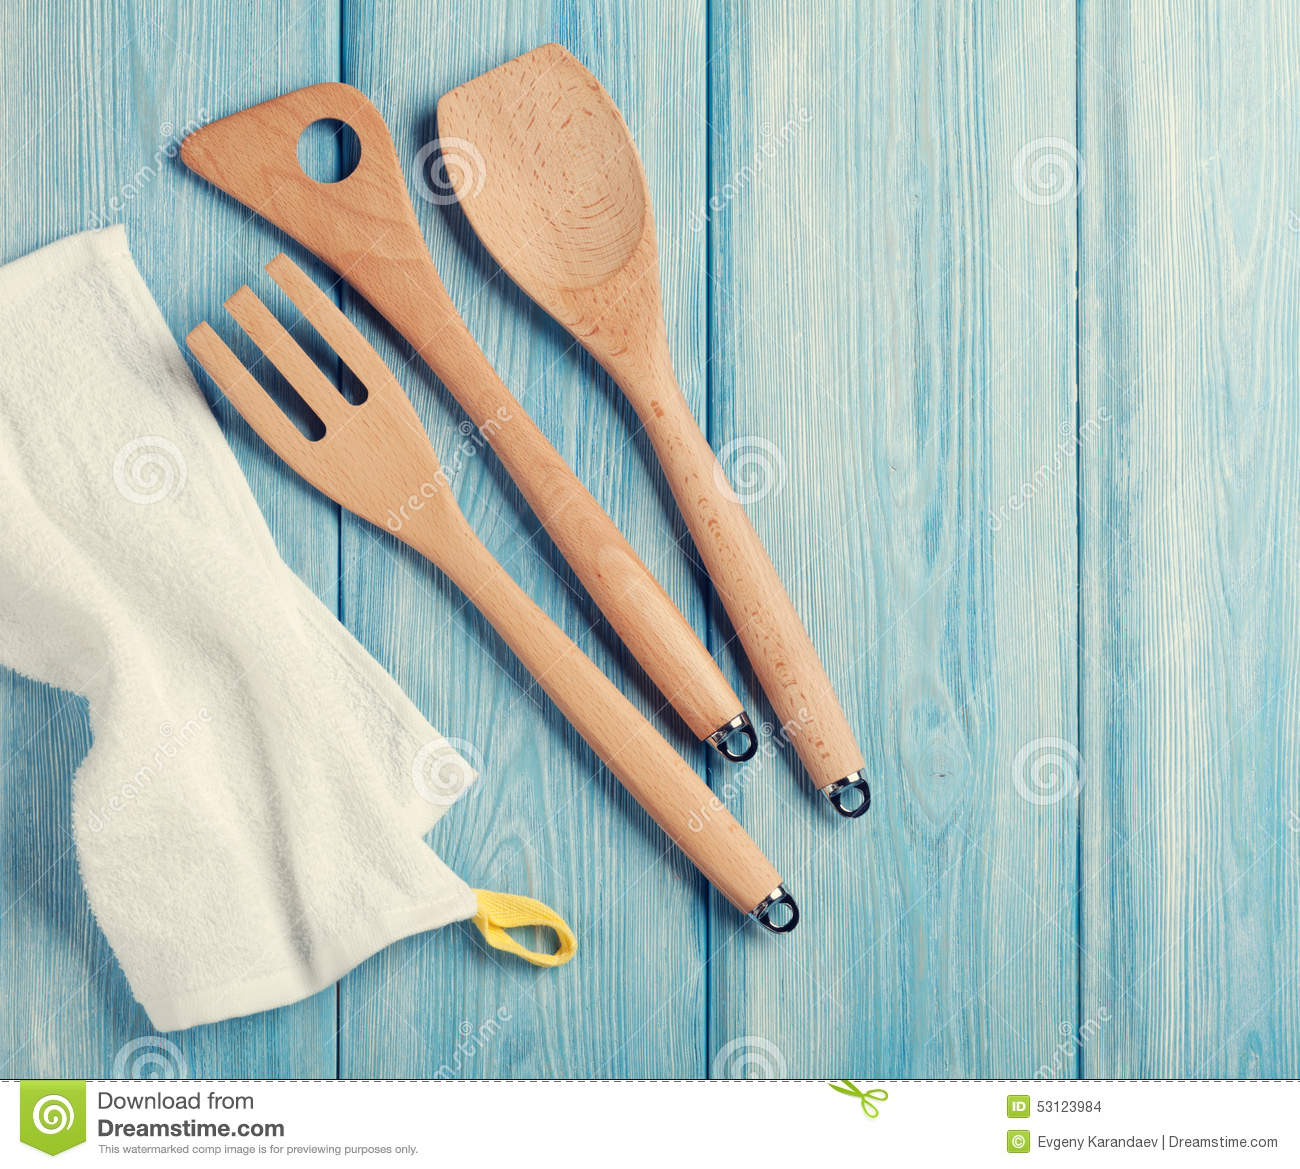 Kitchen Cooking Utensils Over Wooden Table Stock Photo - Image of ...